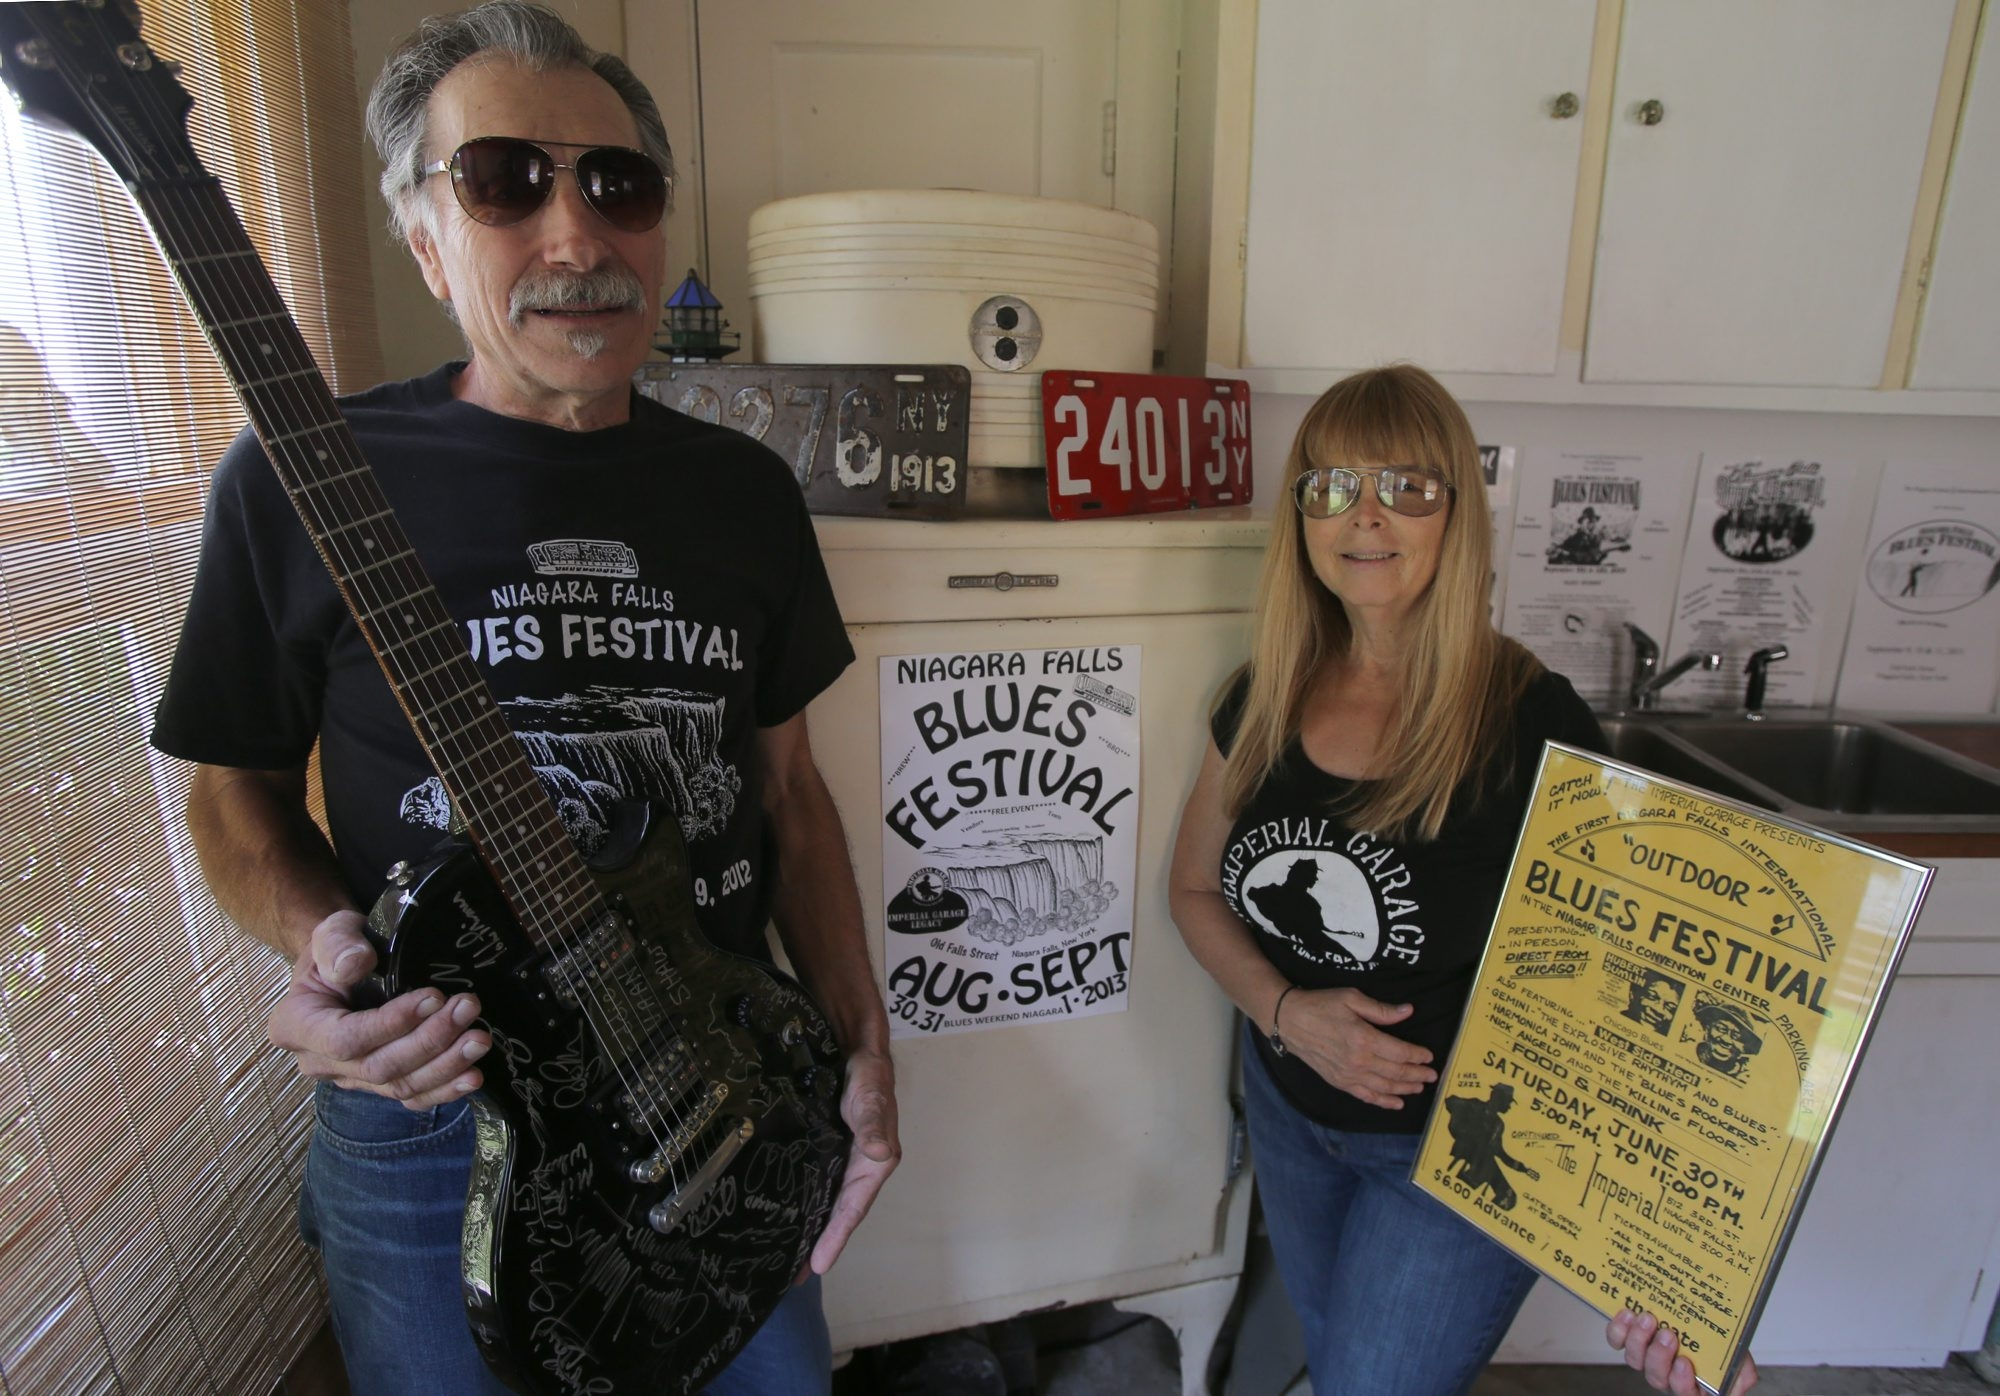 Sherry and Toby Rotella hold items that relate to their roles as organizers of the annual Niagara Falls Blues Festival, including a poster from the defunct Imperial Garage, a Niagara Falls bar that booked blues artists.